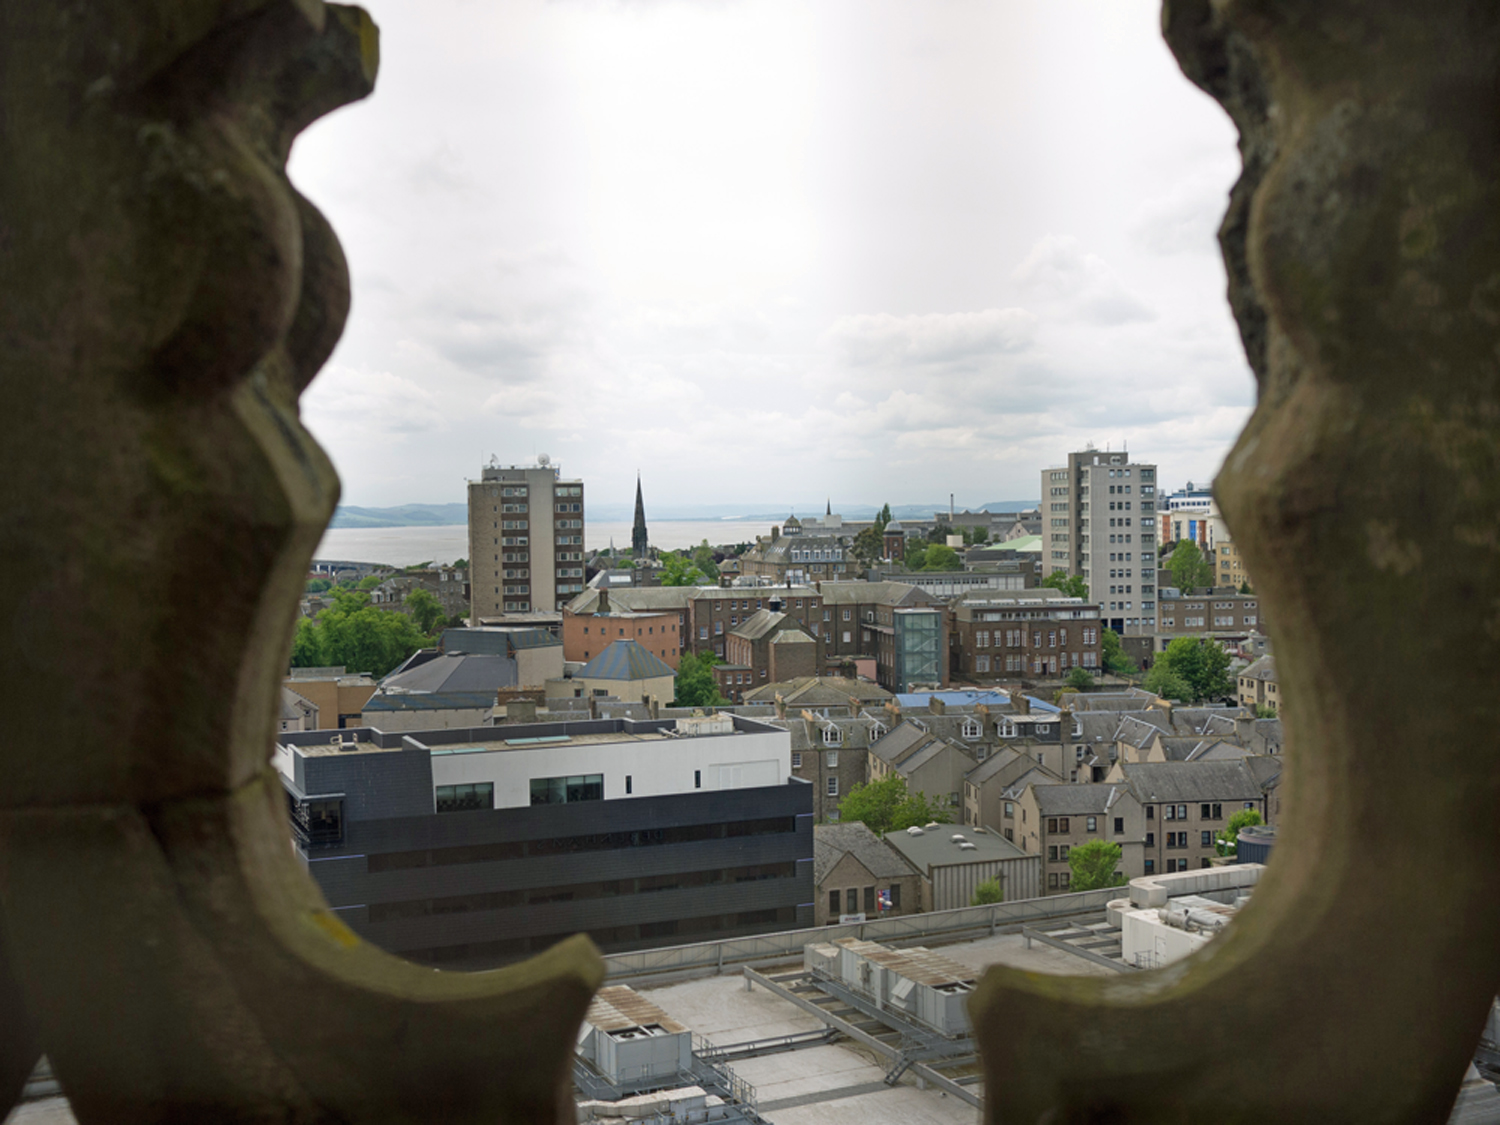 View from top of the tower